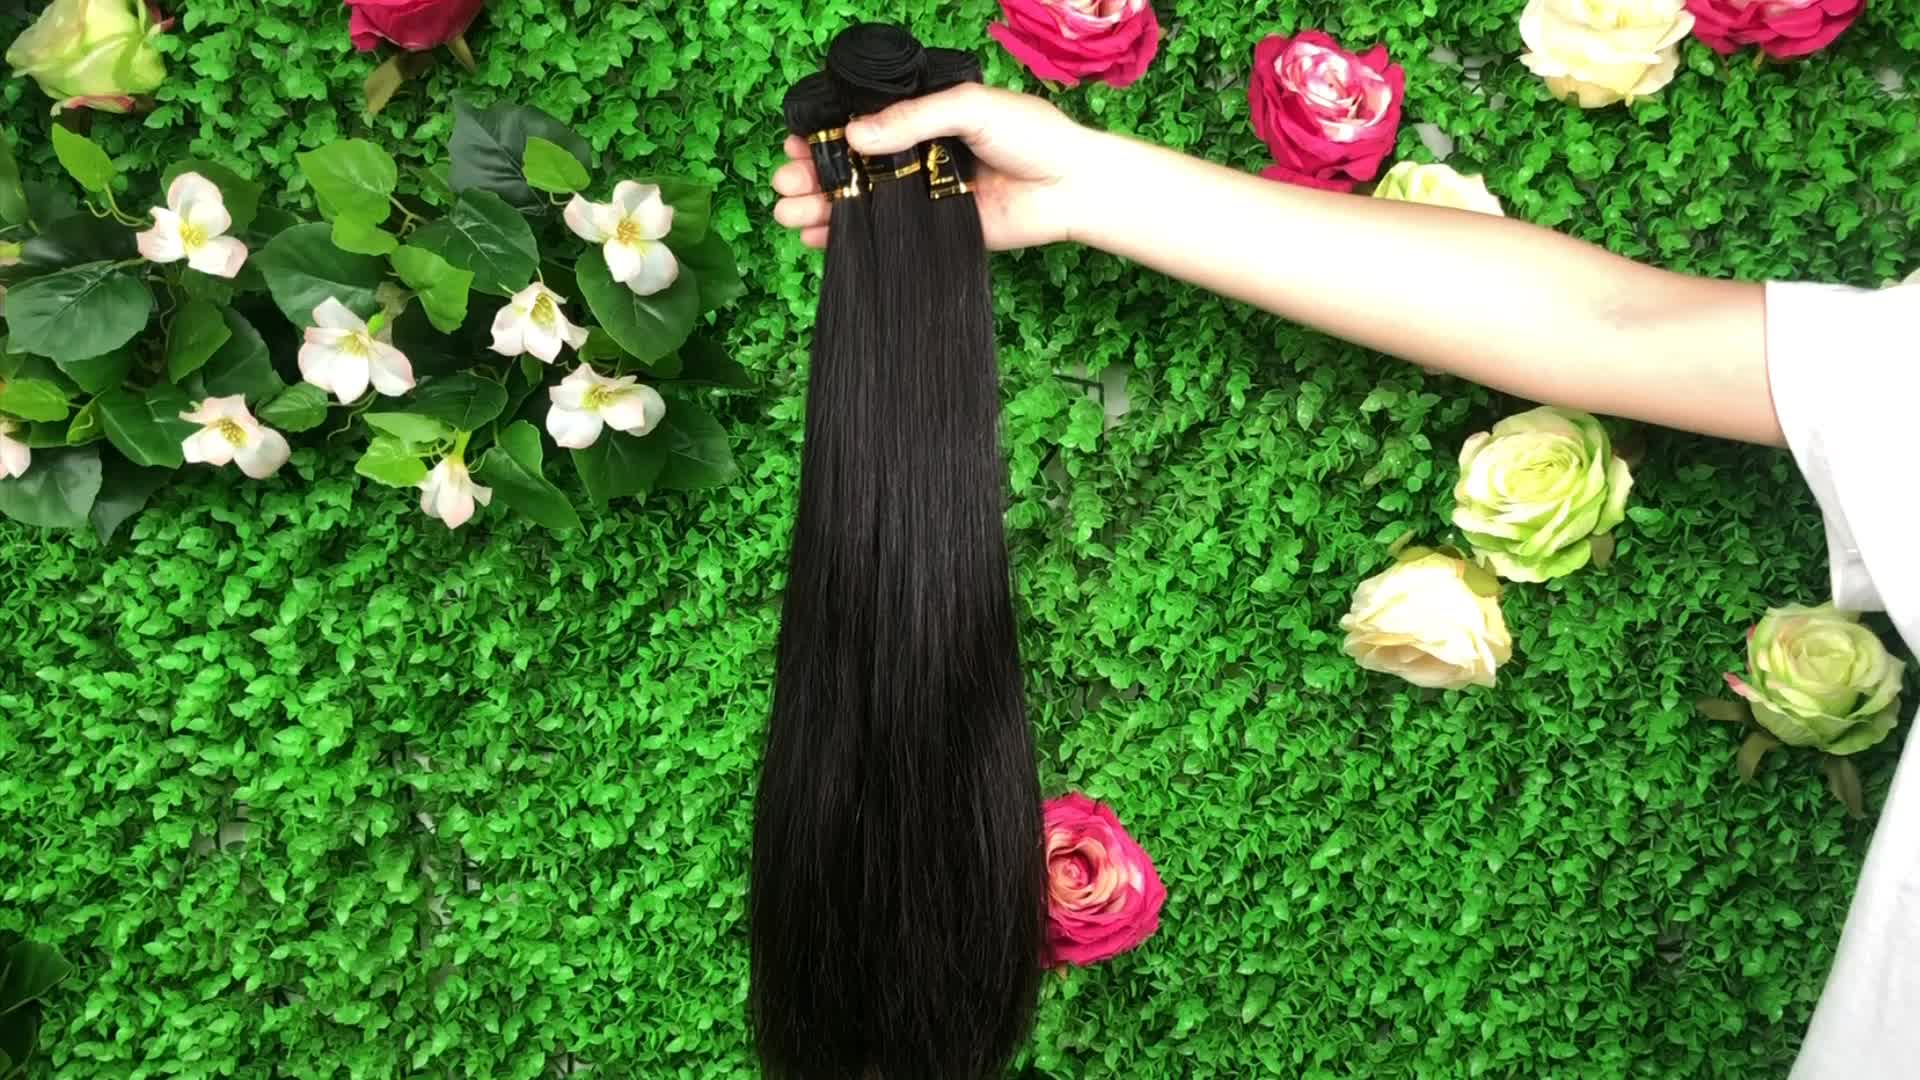 Aosun Curly Raw Indian Temple Hair Bundle, 10a Virgin Raw Indian Hair Vendor From India, Raw Indian Hair Directly From India